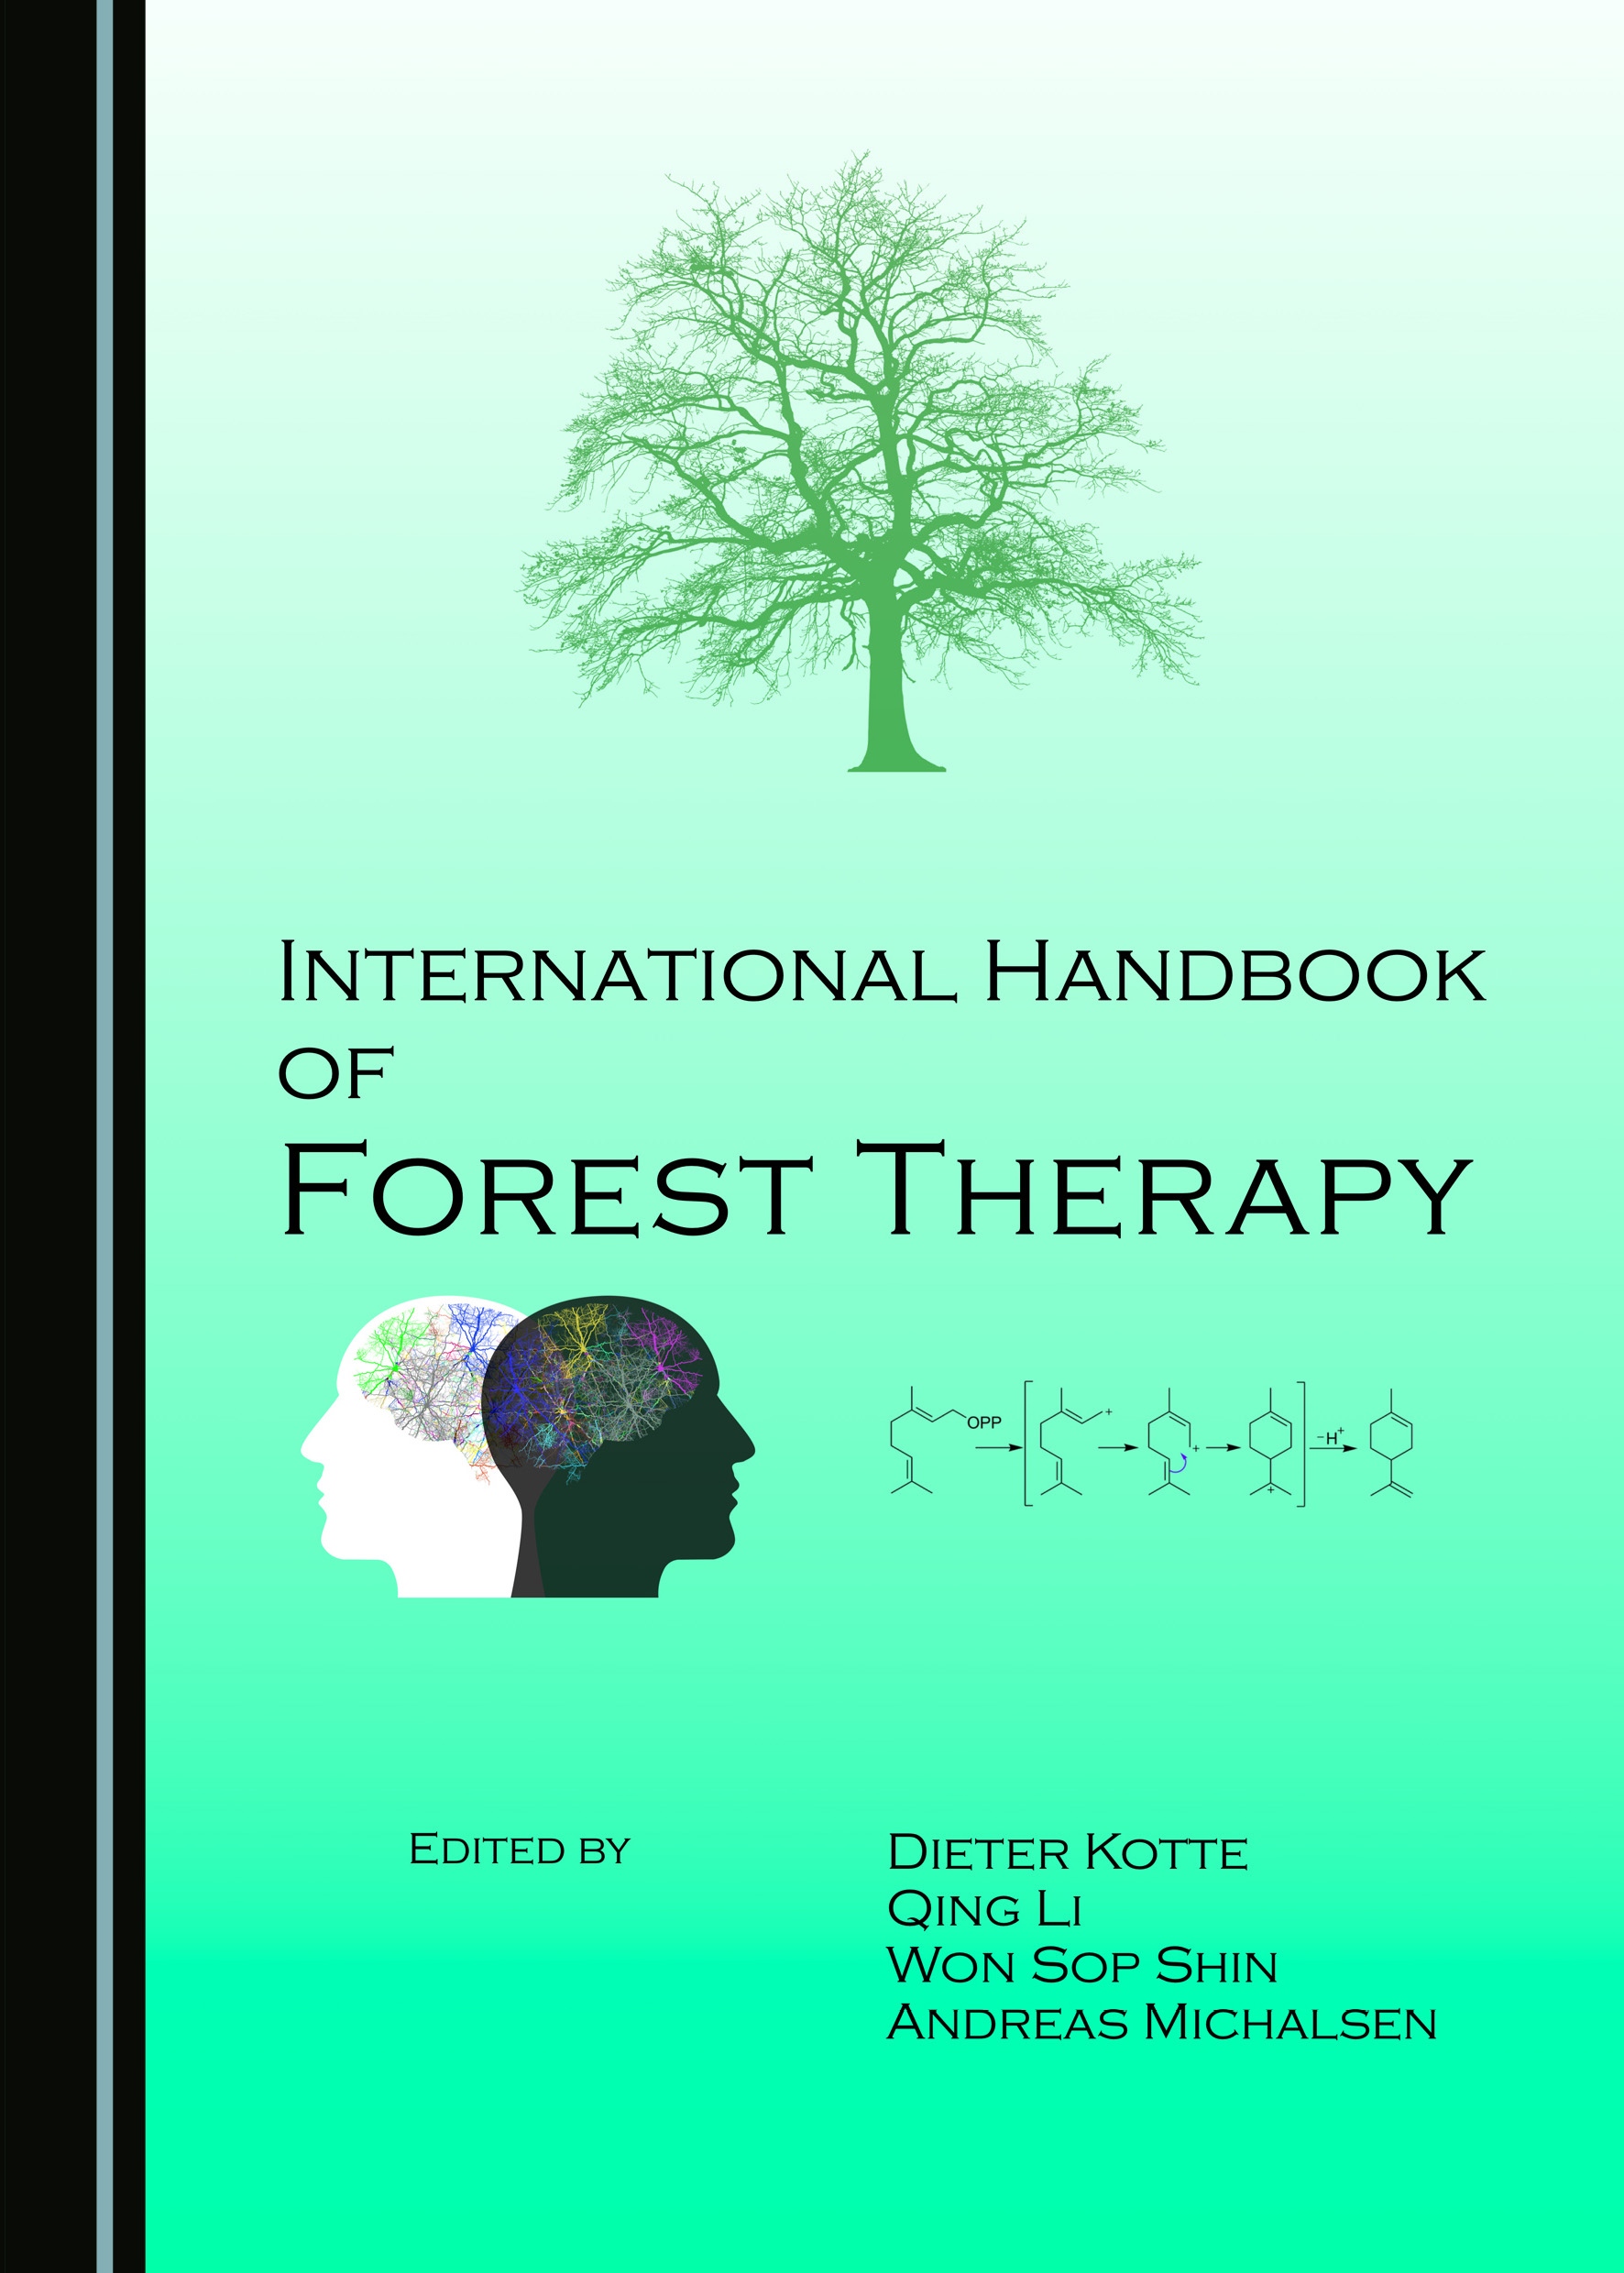 International Handbook of Forest Therapy